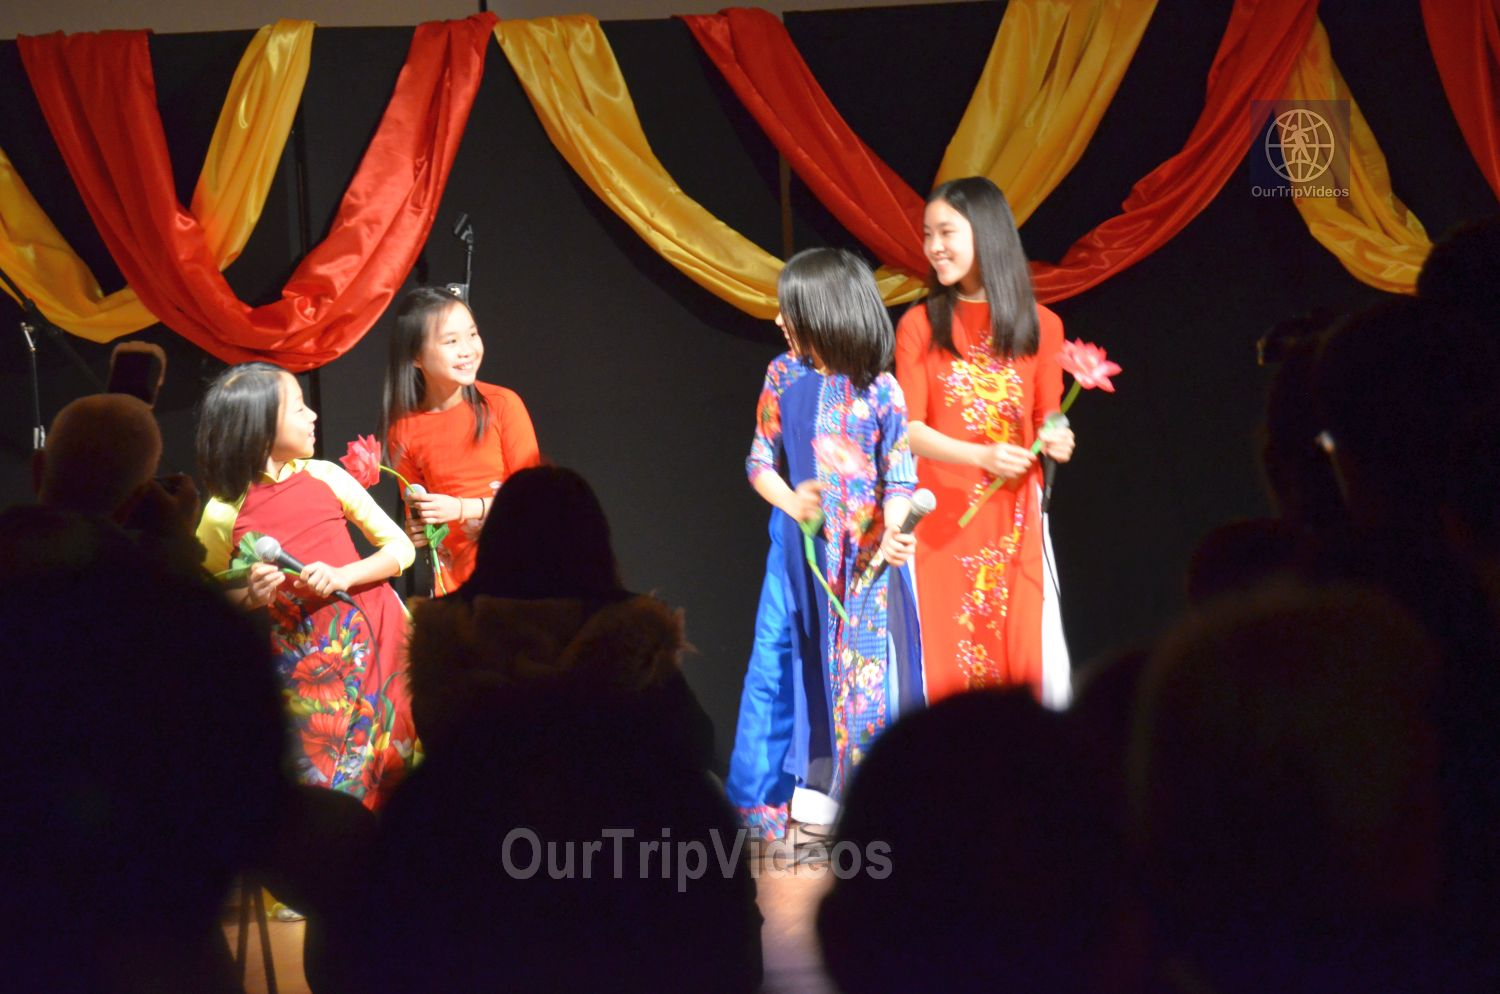 Chinese Lunar New Year Celebration, Milpitas, CA, USA - Picture 15 of 25